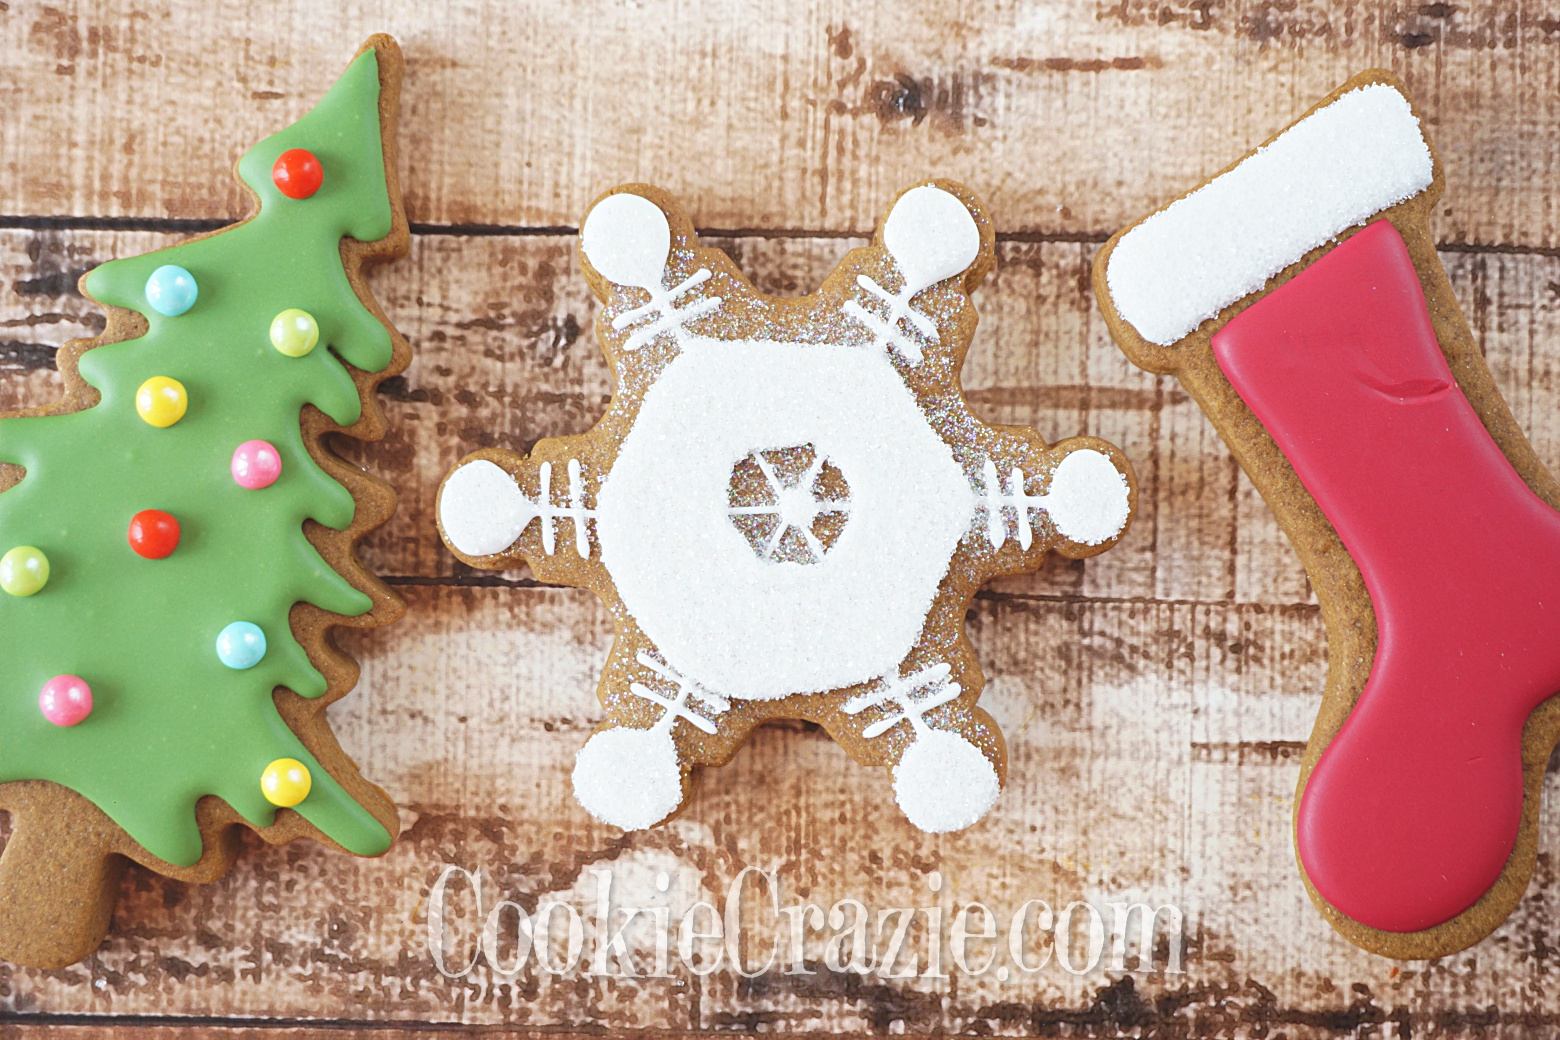 Snowflake Decorated Sugar Cookie YouTube video  HERE